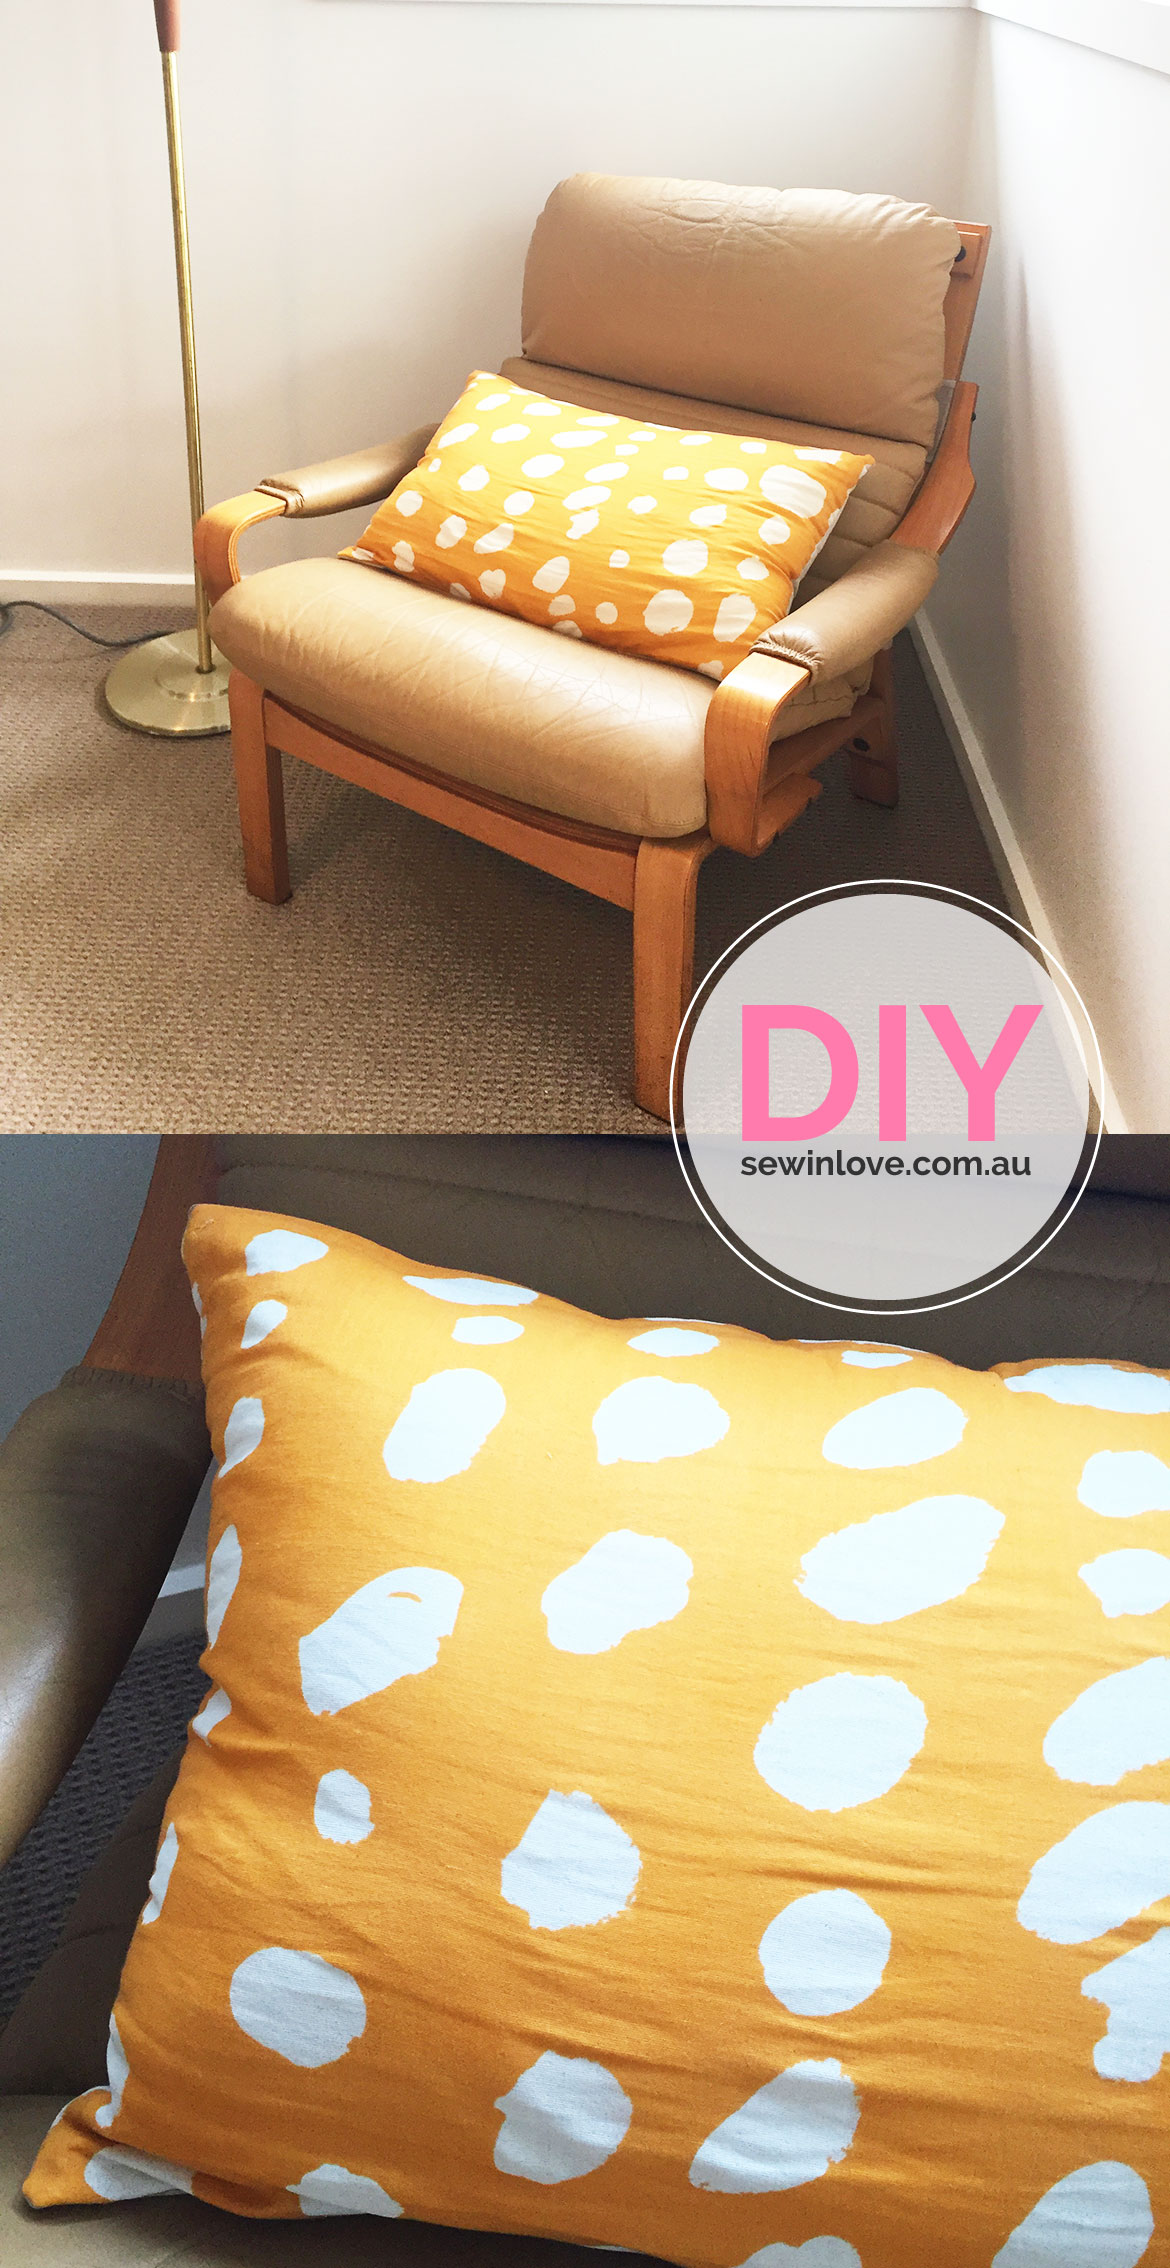 DIY Thorw PIllow | This simple pillow is made special by the beautiful fabric by Nani Iro. It's a Japanese fabric brand that designs gorgeous, natural fabrics.